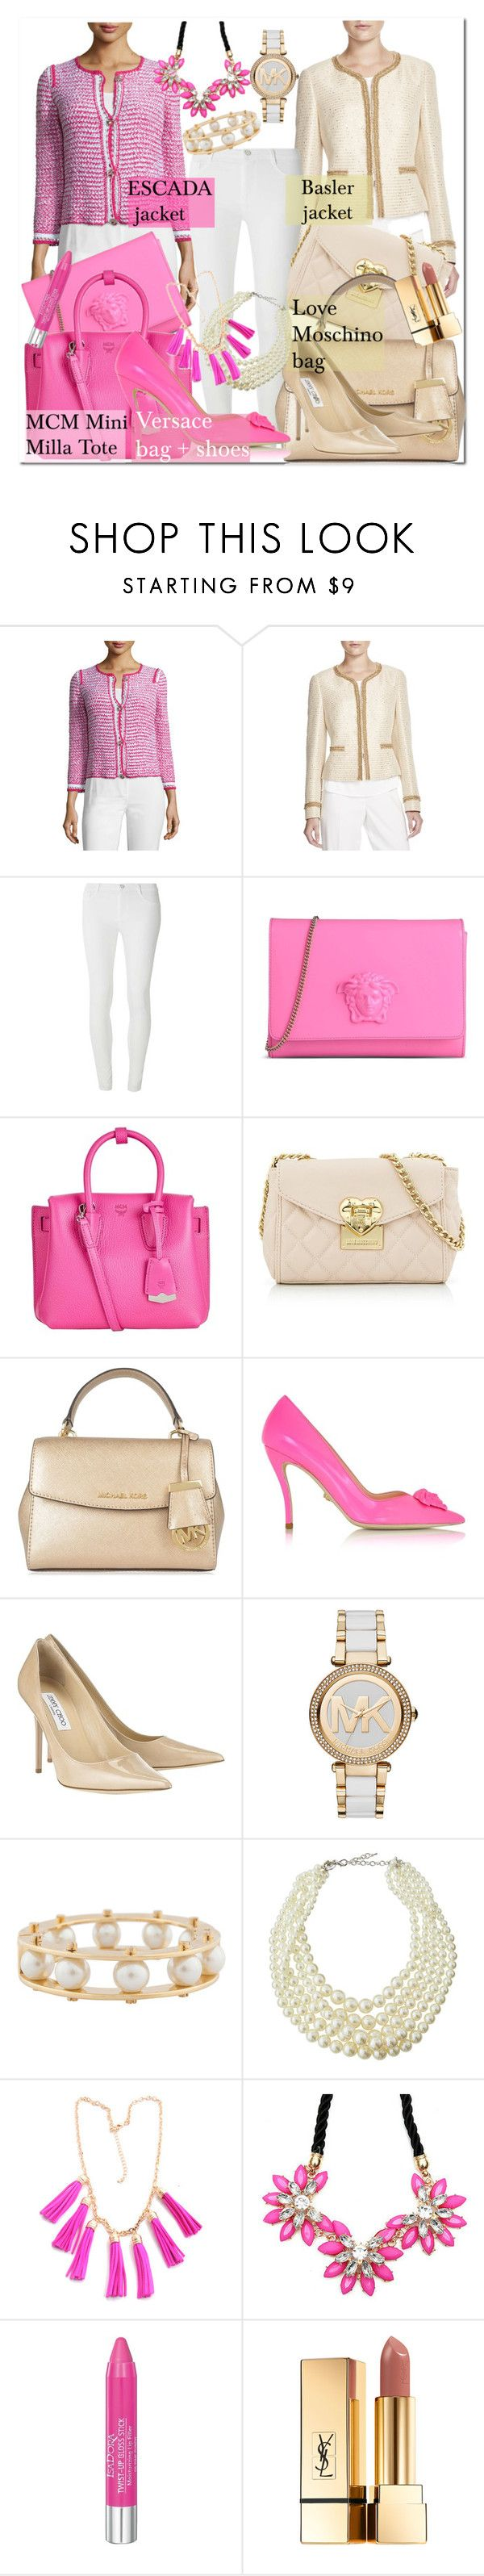 """""""Casual Friday Office Look"""" by pureglamchic ❤ liked on Polyvore featuring ESCADA, Basler, Dorothy Perkins, Versace, MCM, Love Moschino, MICHAEL Michael Kors, Jimmy Choo, Michael Kors and Lele Sadoughi"""